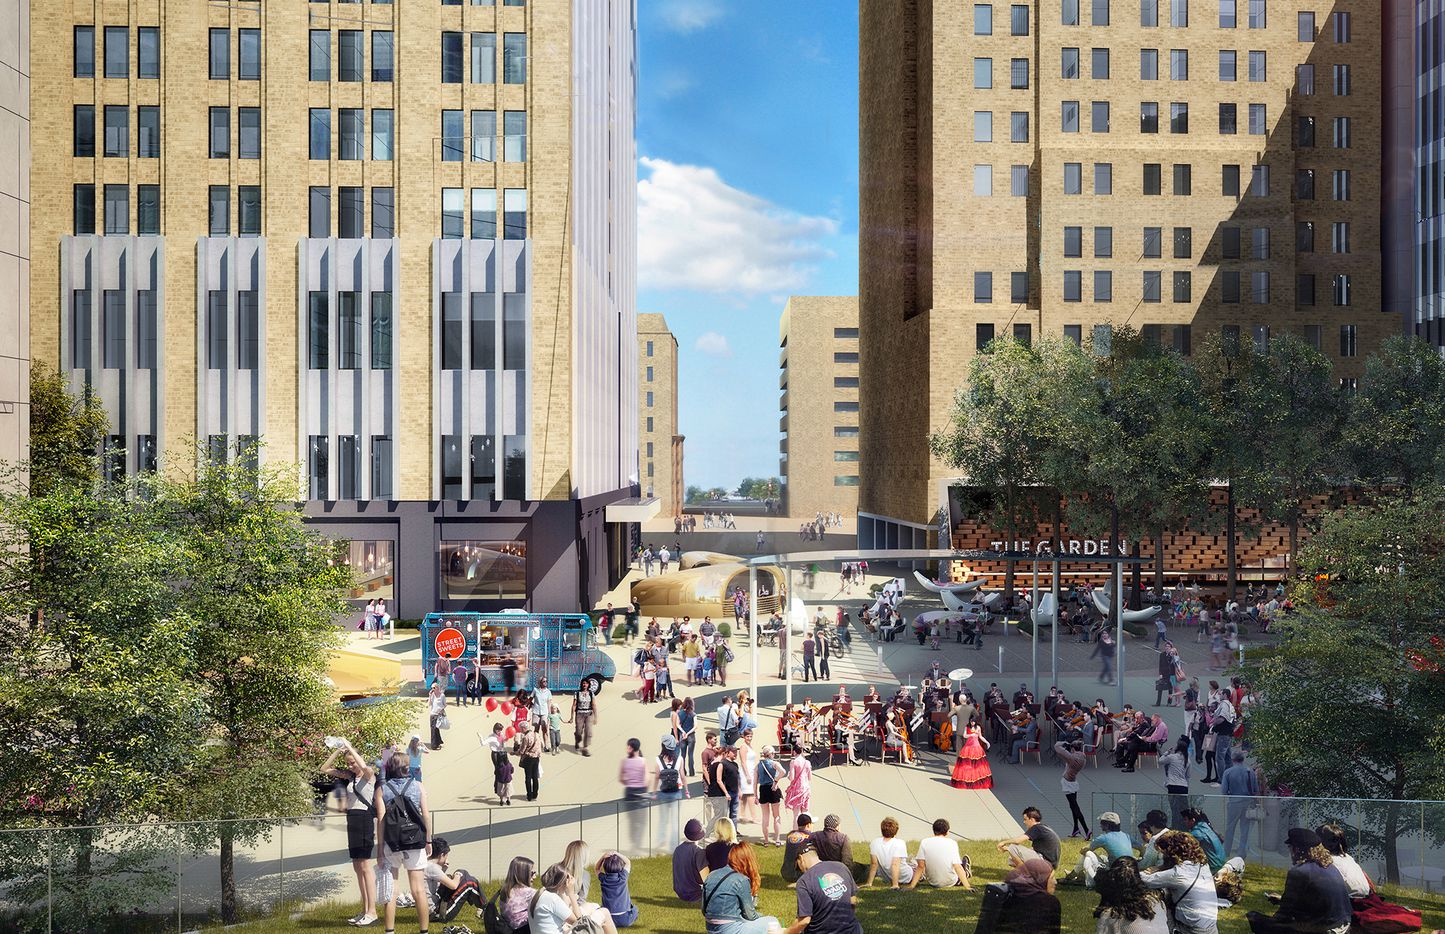 The public plaza along Commerce Street would be rebuilt with gathering areas and eateries.